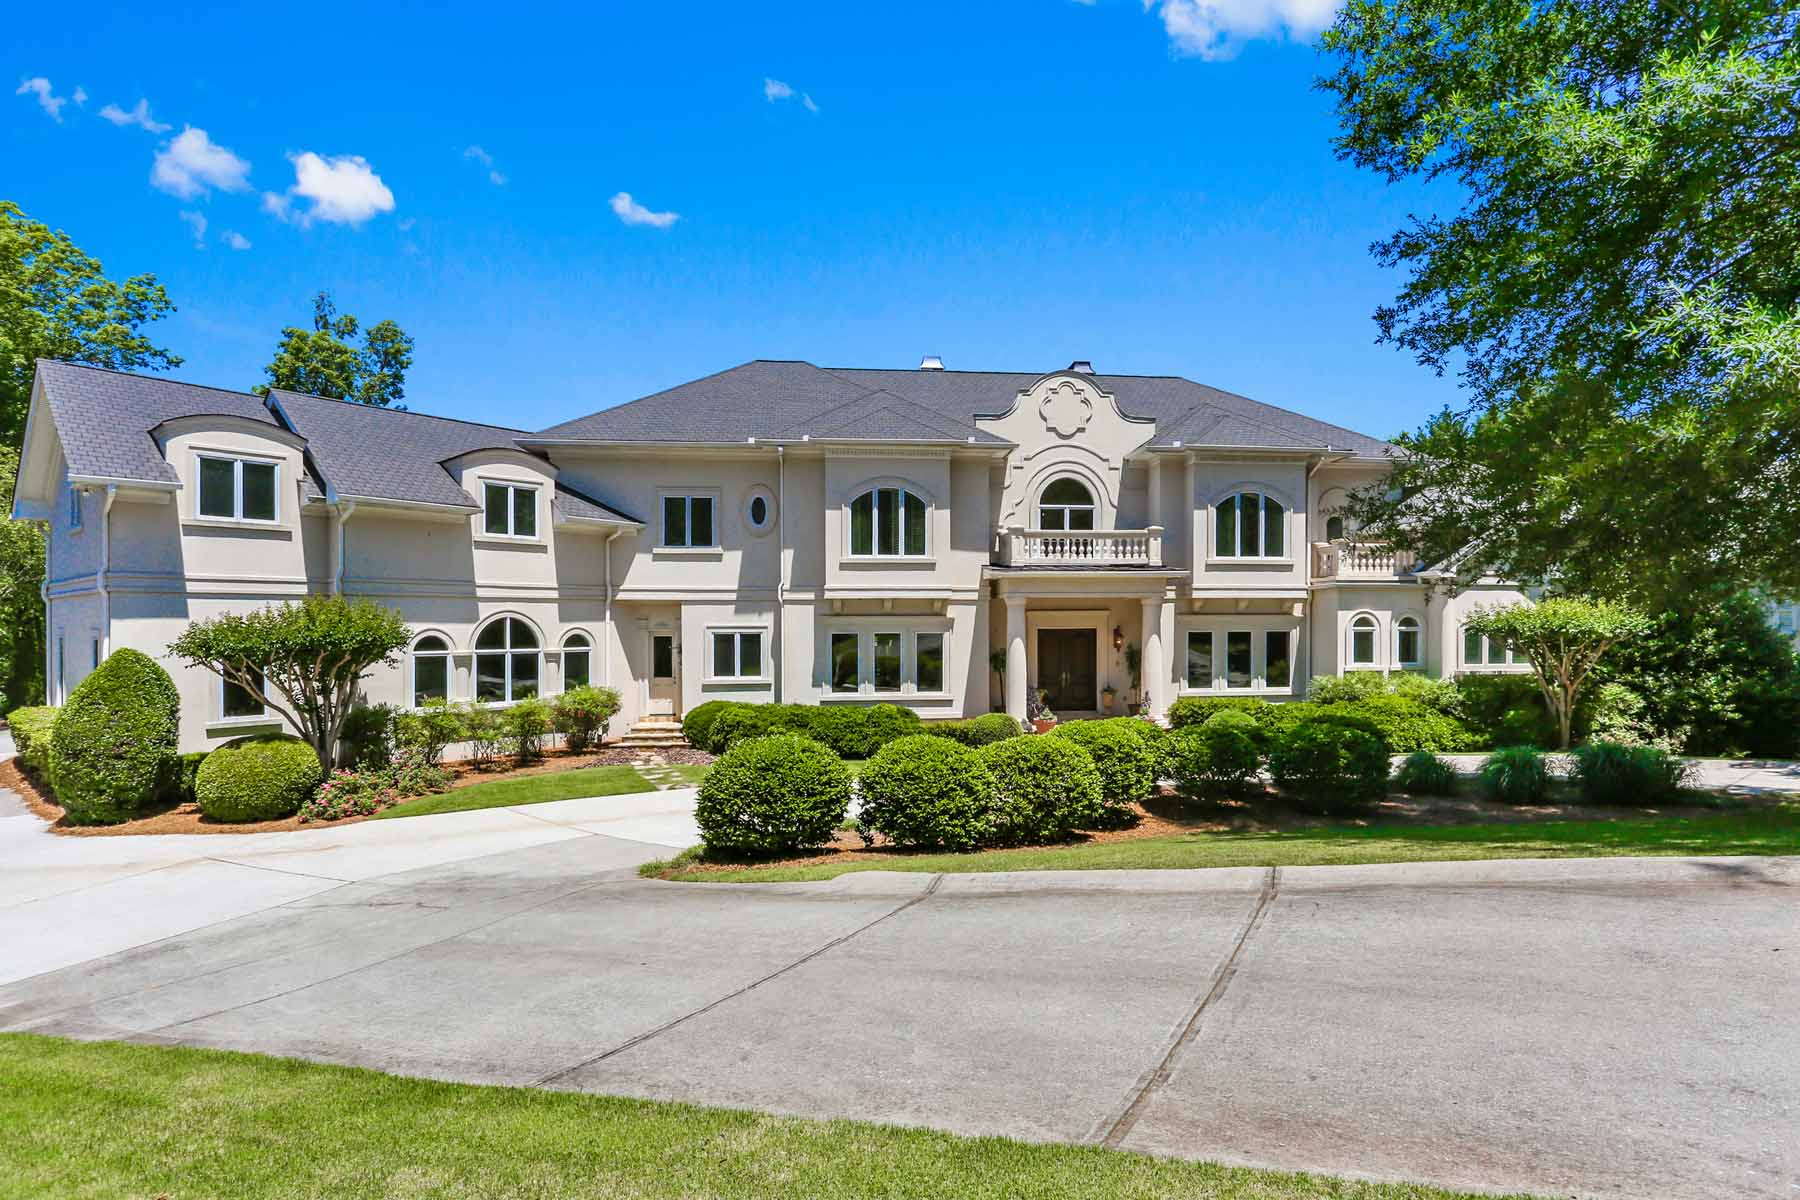 Single Family Home for Active at Magnificent Country Club Estate Home on Sprawling Property 1235 Stuart Ridge Alpharetta, Georgia 30022 United States